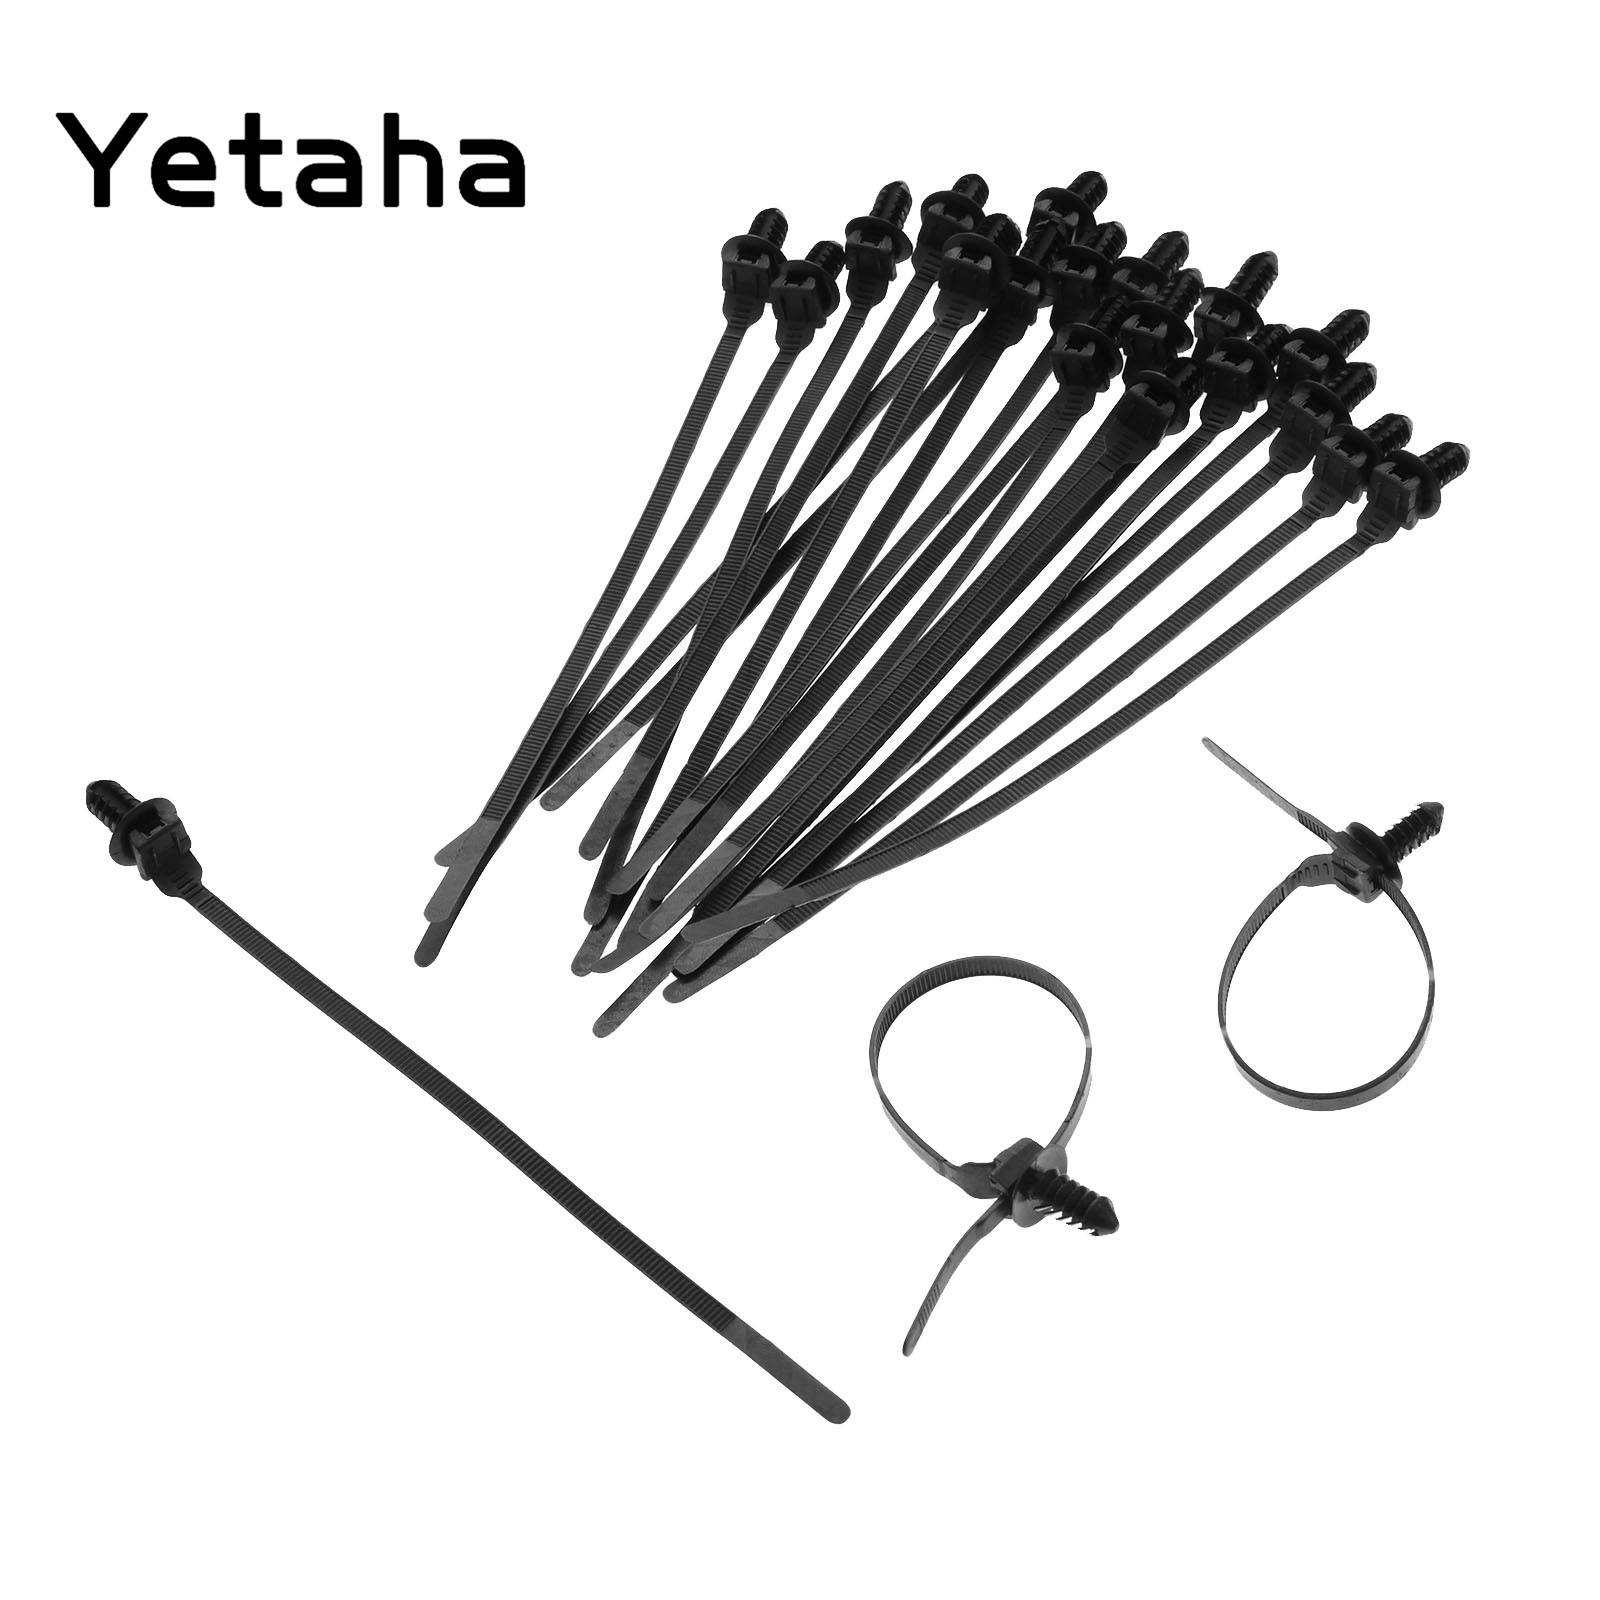 yetaha 30 pcs nylon black car cable strap push mount wire tie retainer clip clamp car cable